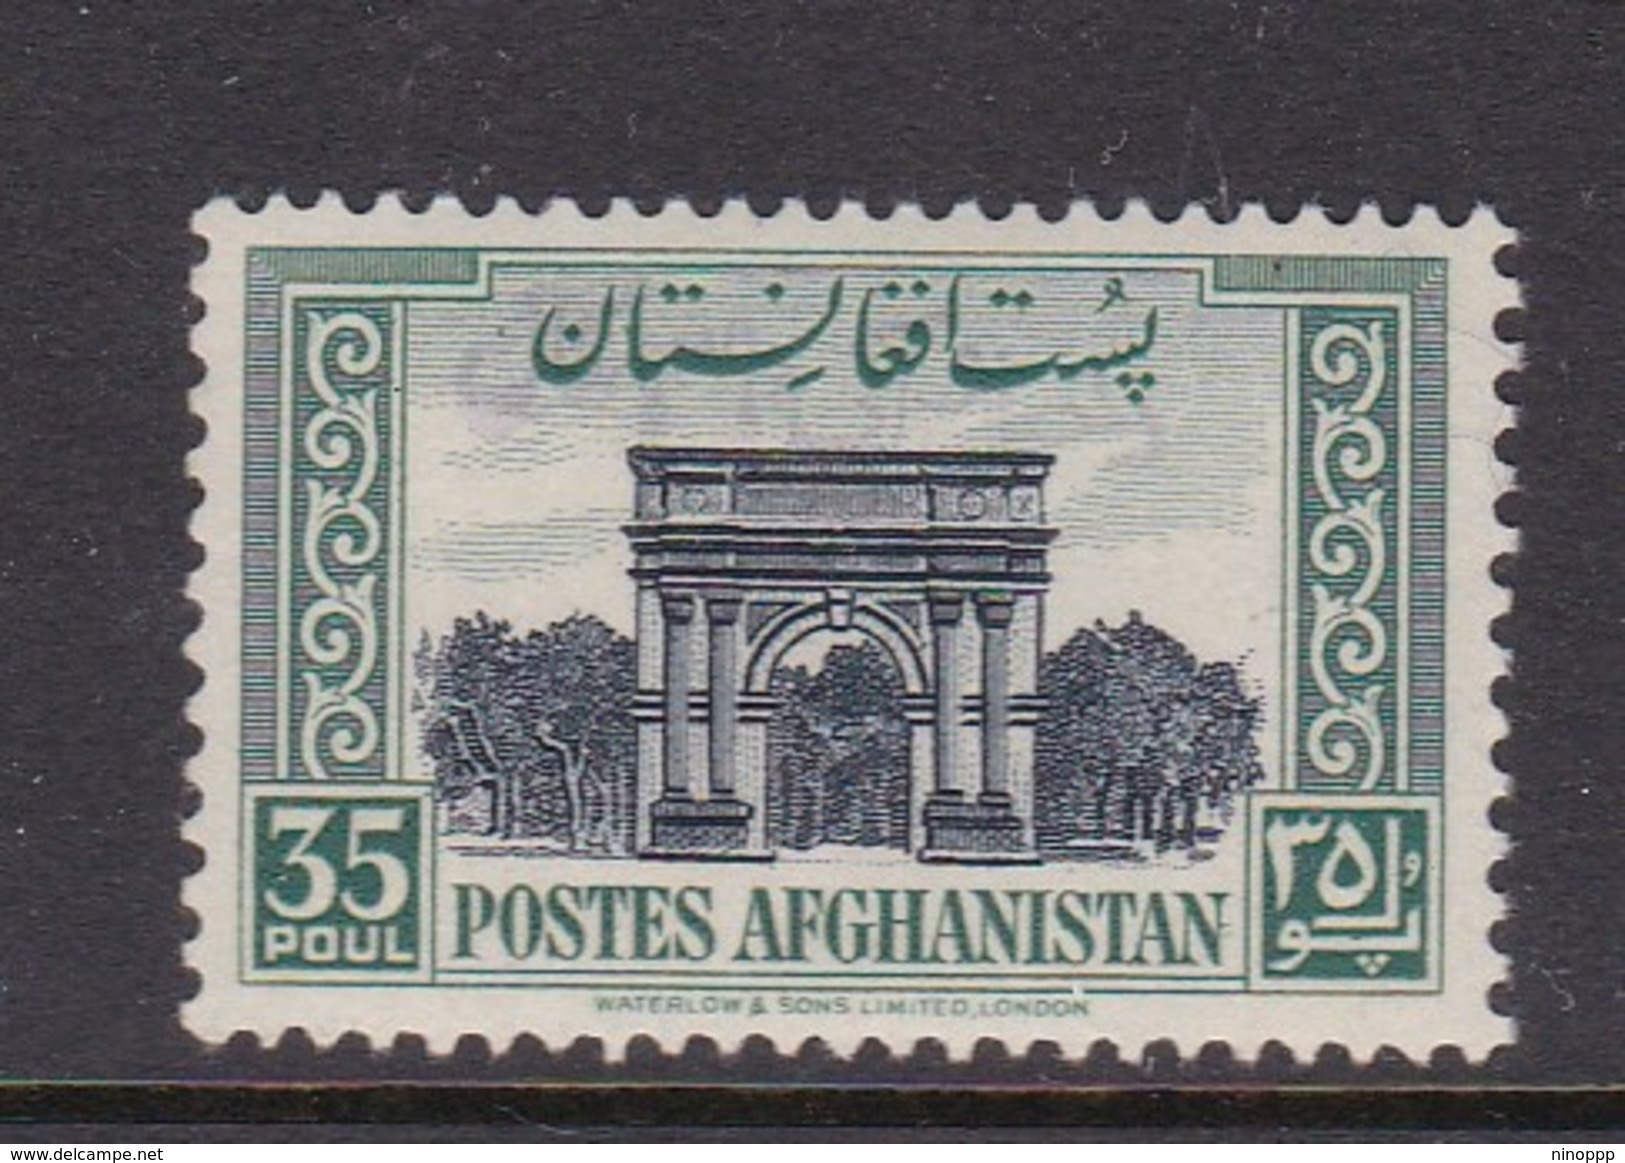 Afghanistan SG 344 1951 33rd Independence Day 35p Black And Green MNH - Afghanistan